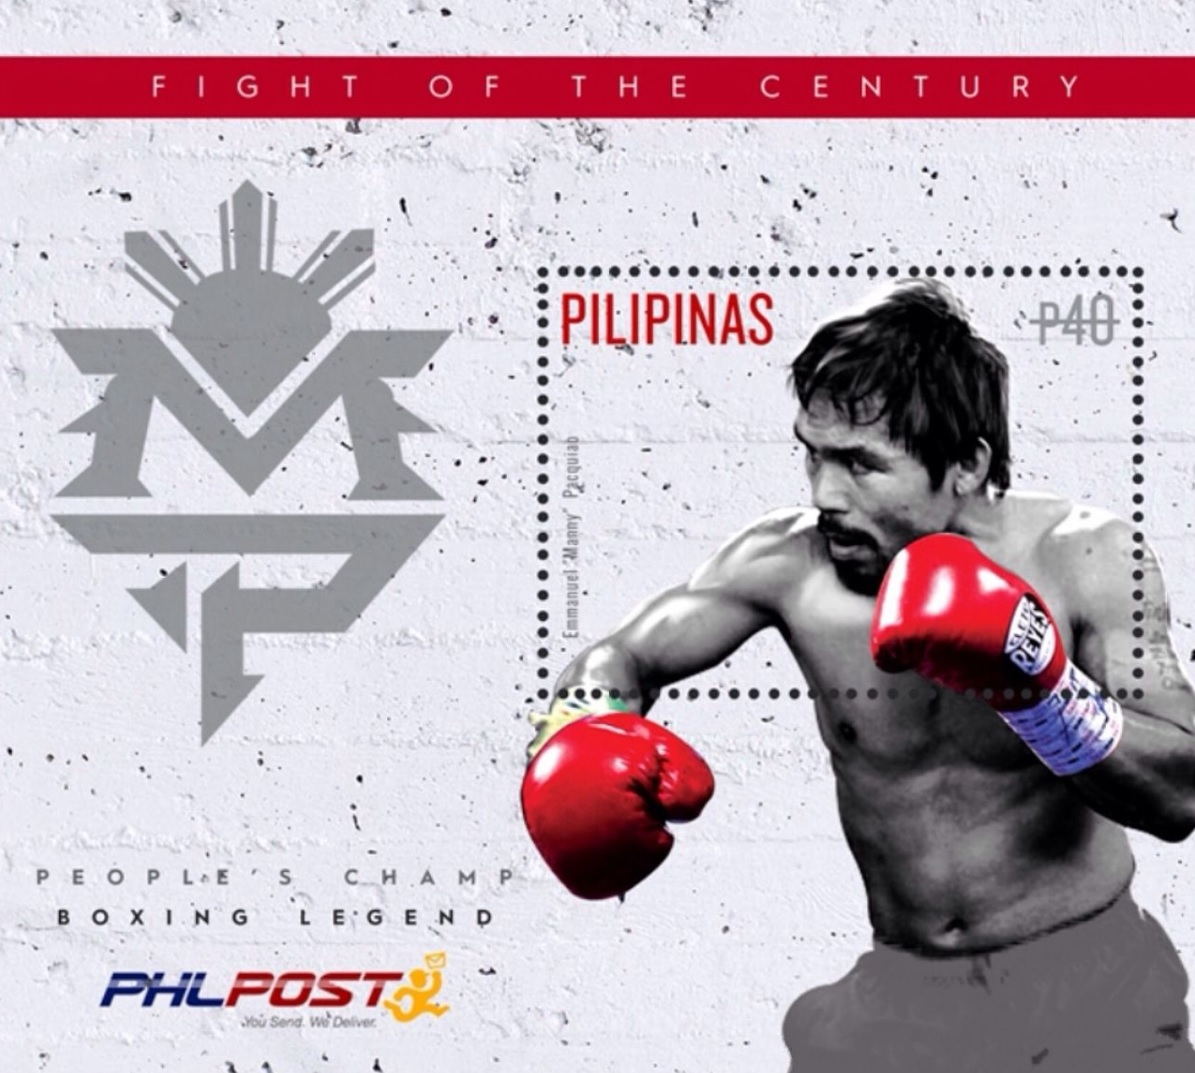 図4.切手のモデルとなったパッキャオ https://en.wikipedia.org/wiki/Manny_Pacquiao#/media/File:Manny_Pacquiao_2015_stampsheet_of_the_Philippines.jpg